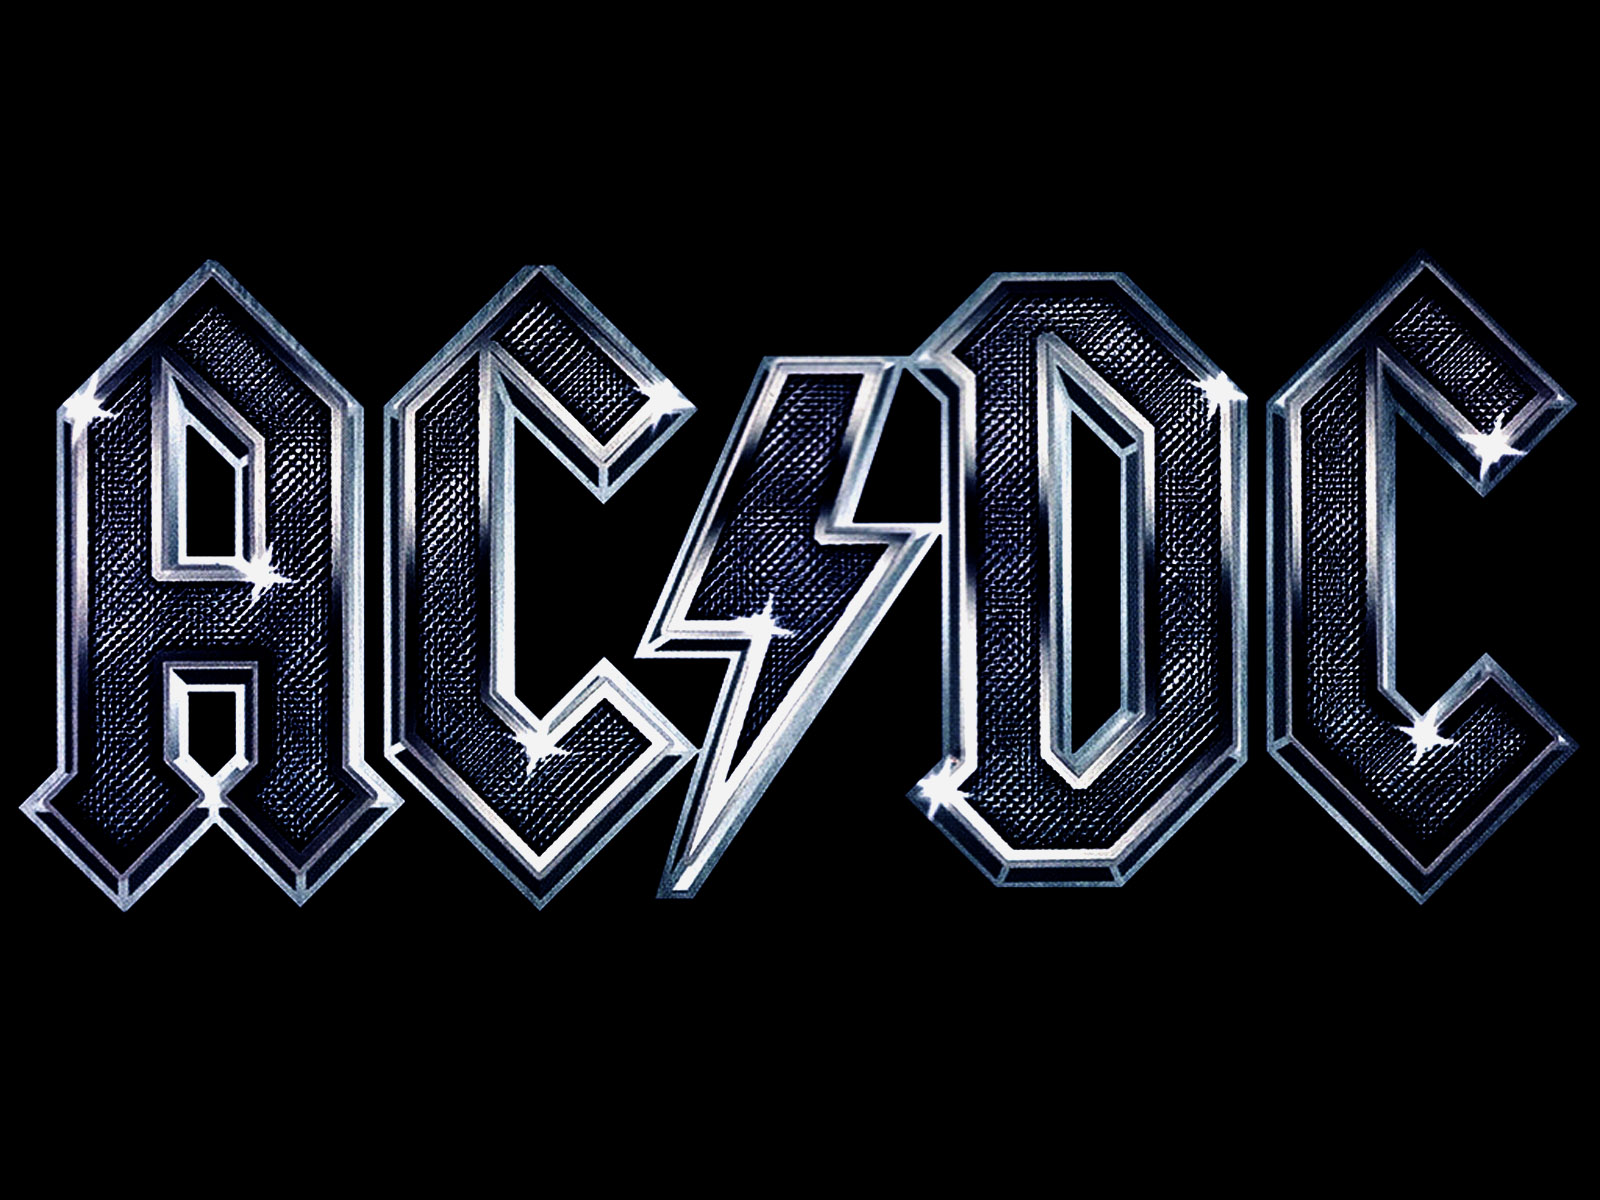 Free download AC DC Music Band HD Wallpapers Album Covers Desktop